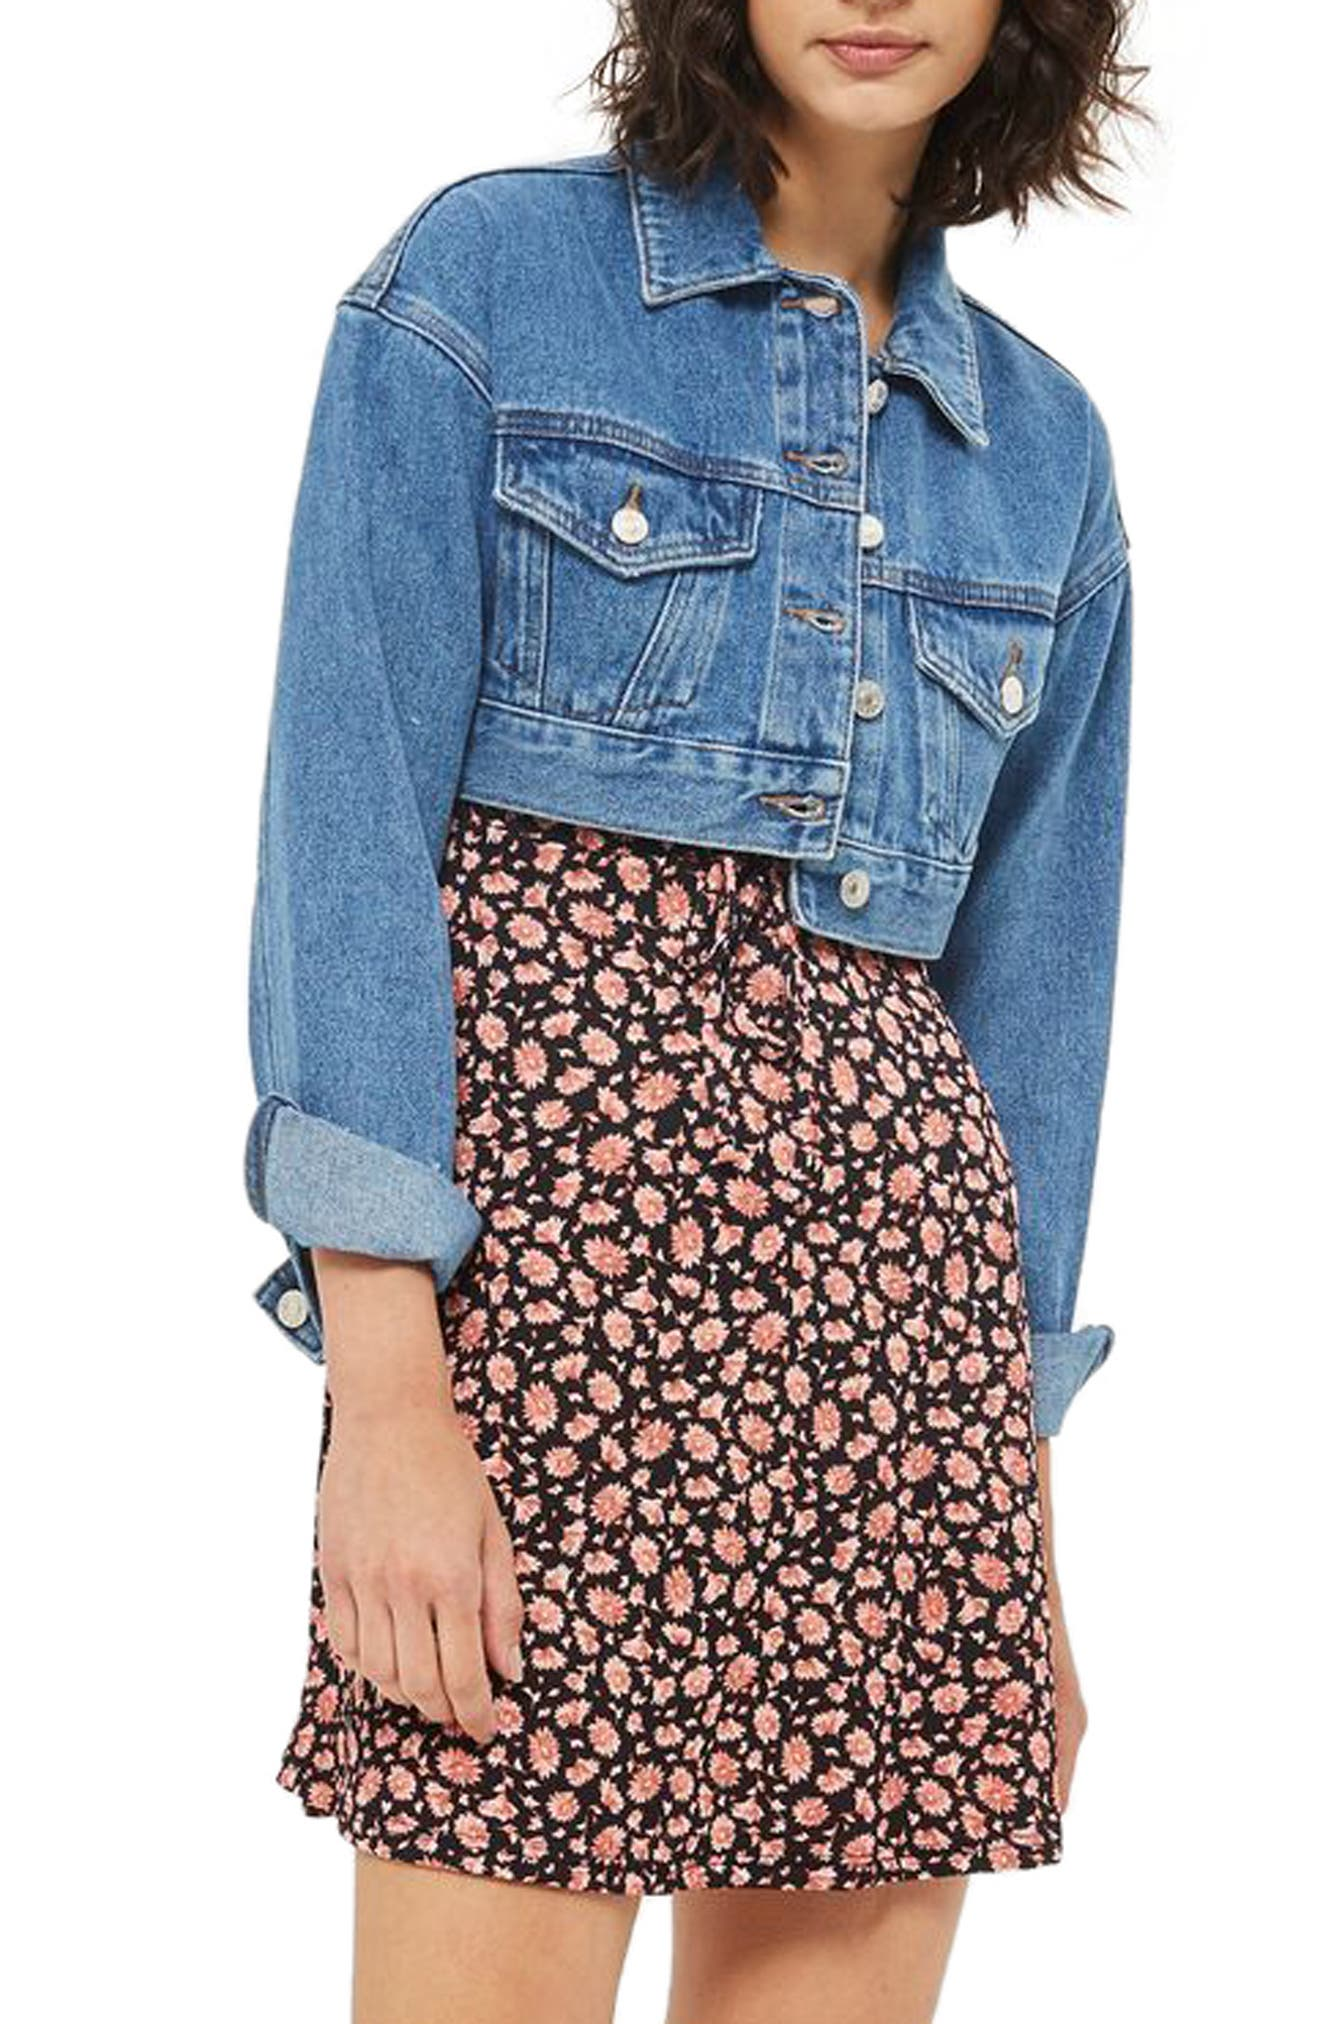 Topshop Shrunken Crop Denim Jacket